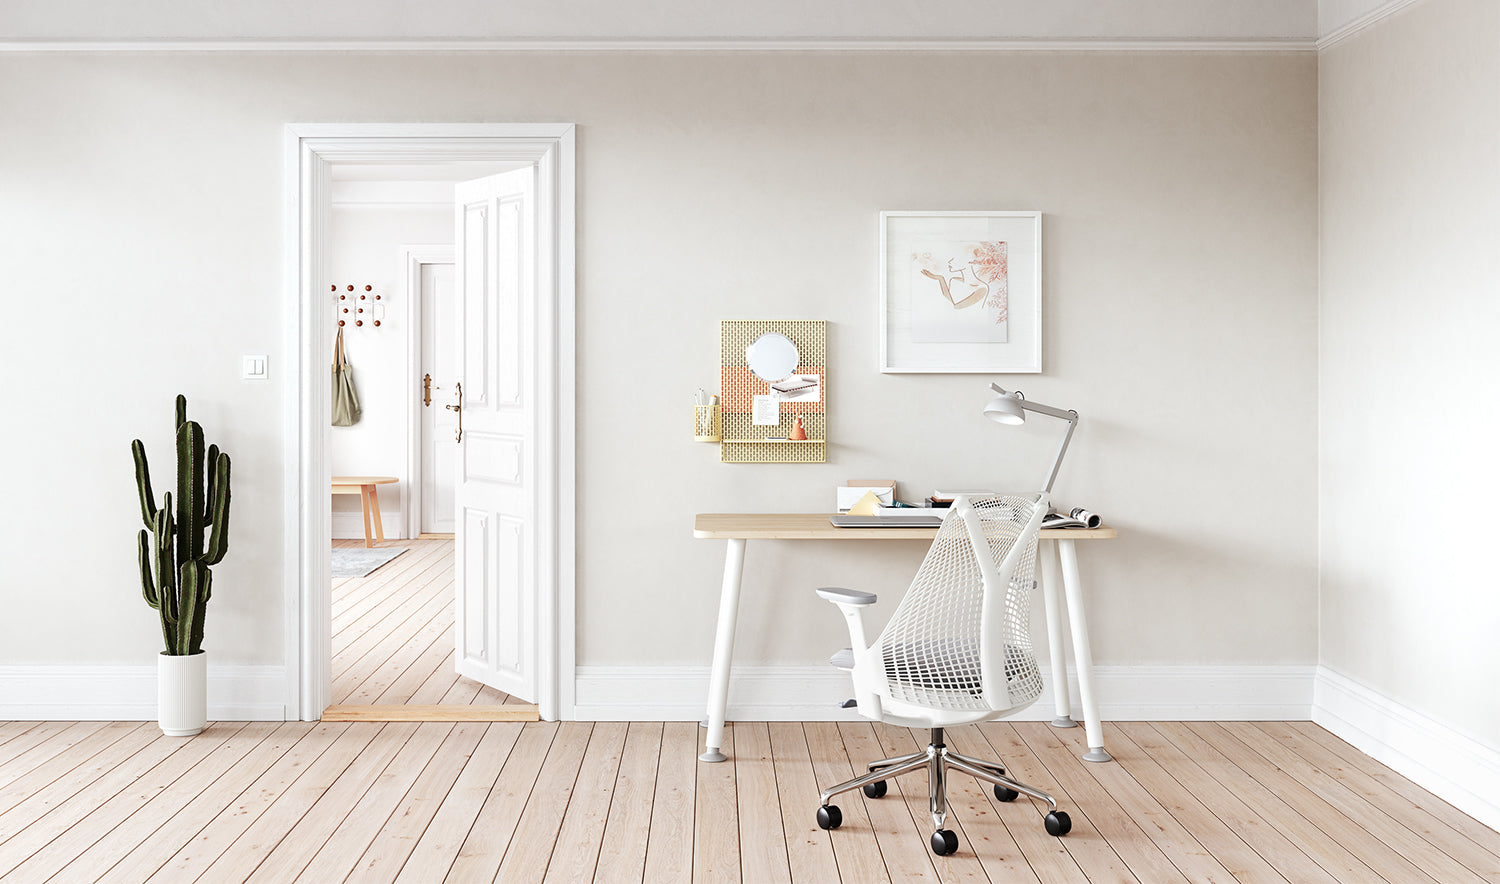 A white and grey Sayl chair alongside a Memo desk in a home office environment